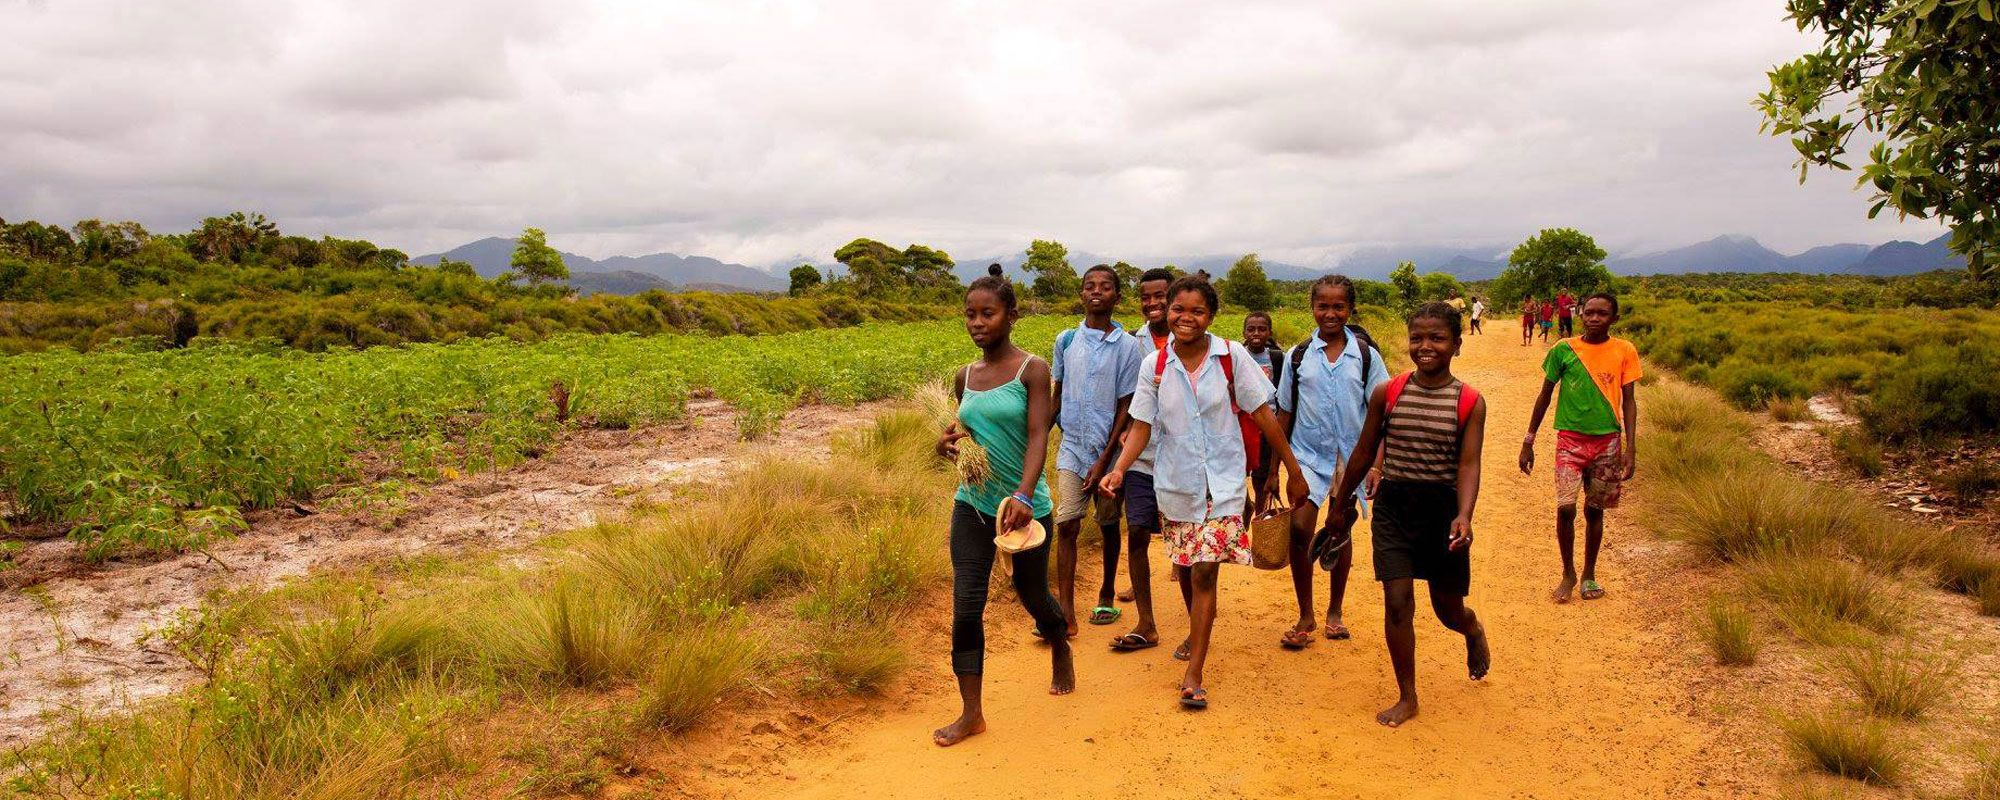 Girls walking to school in a rural area of southeast Madagascar